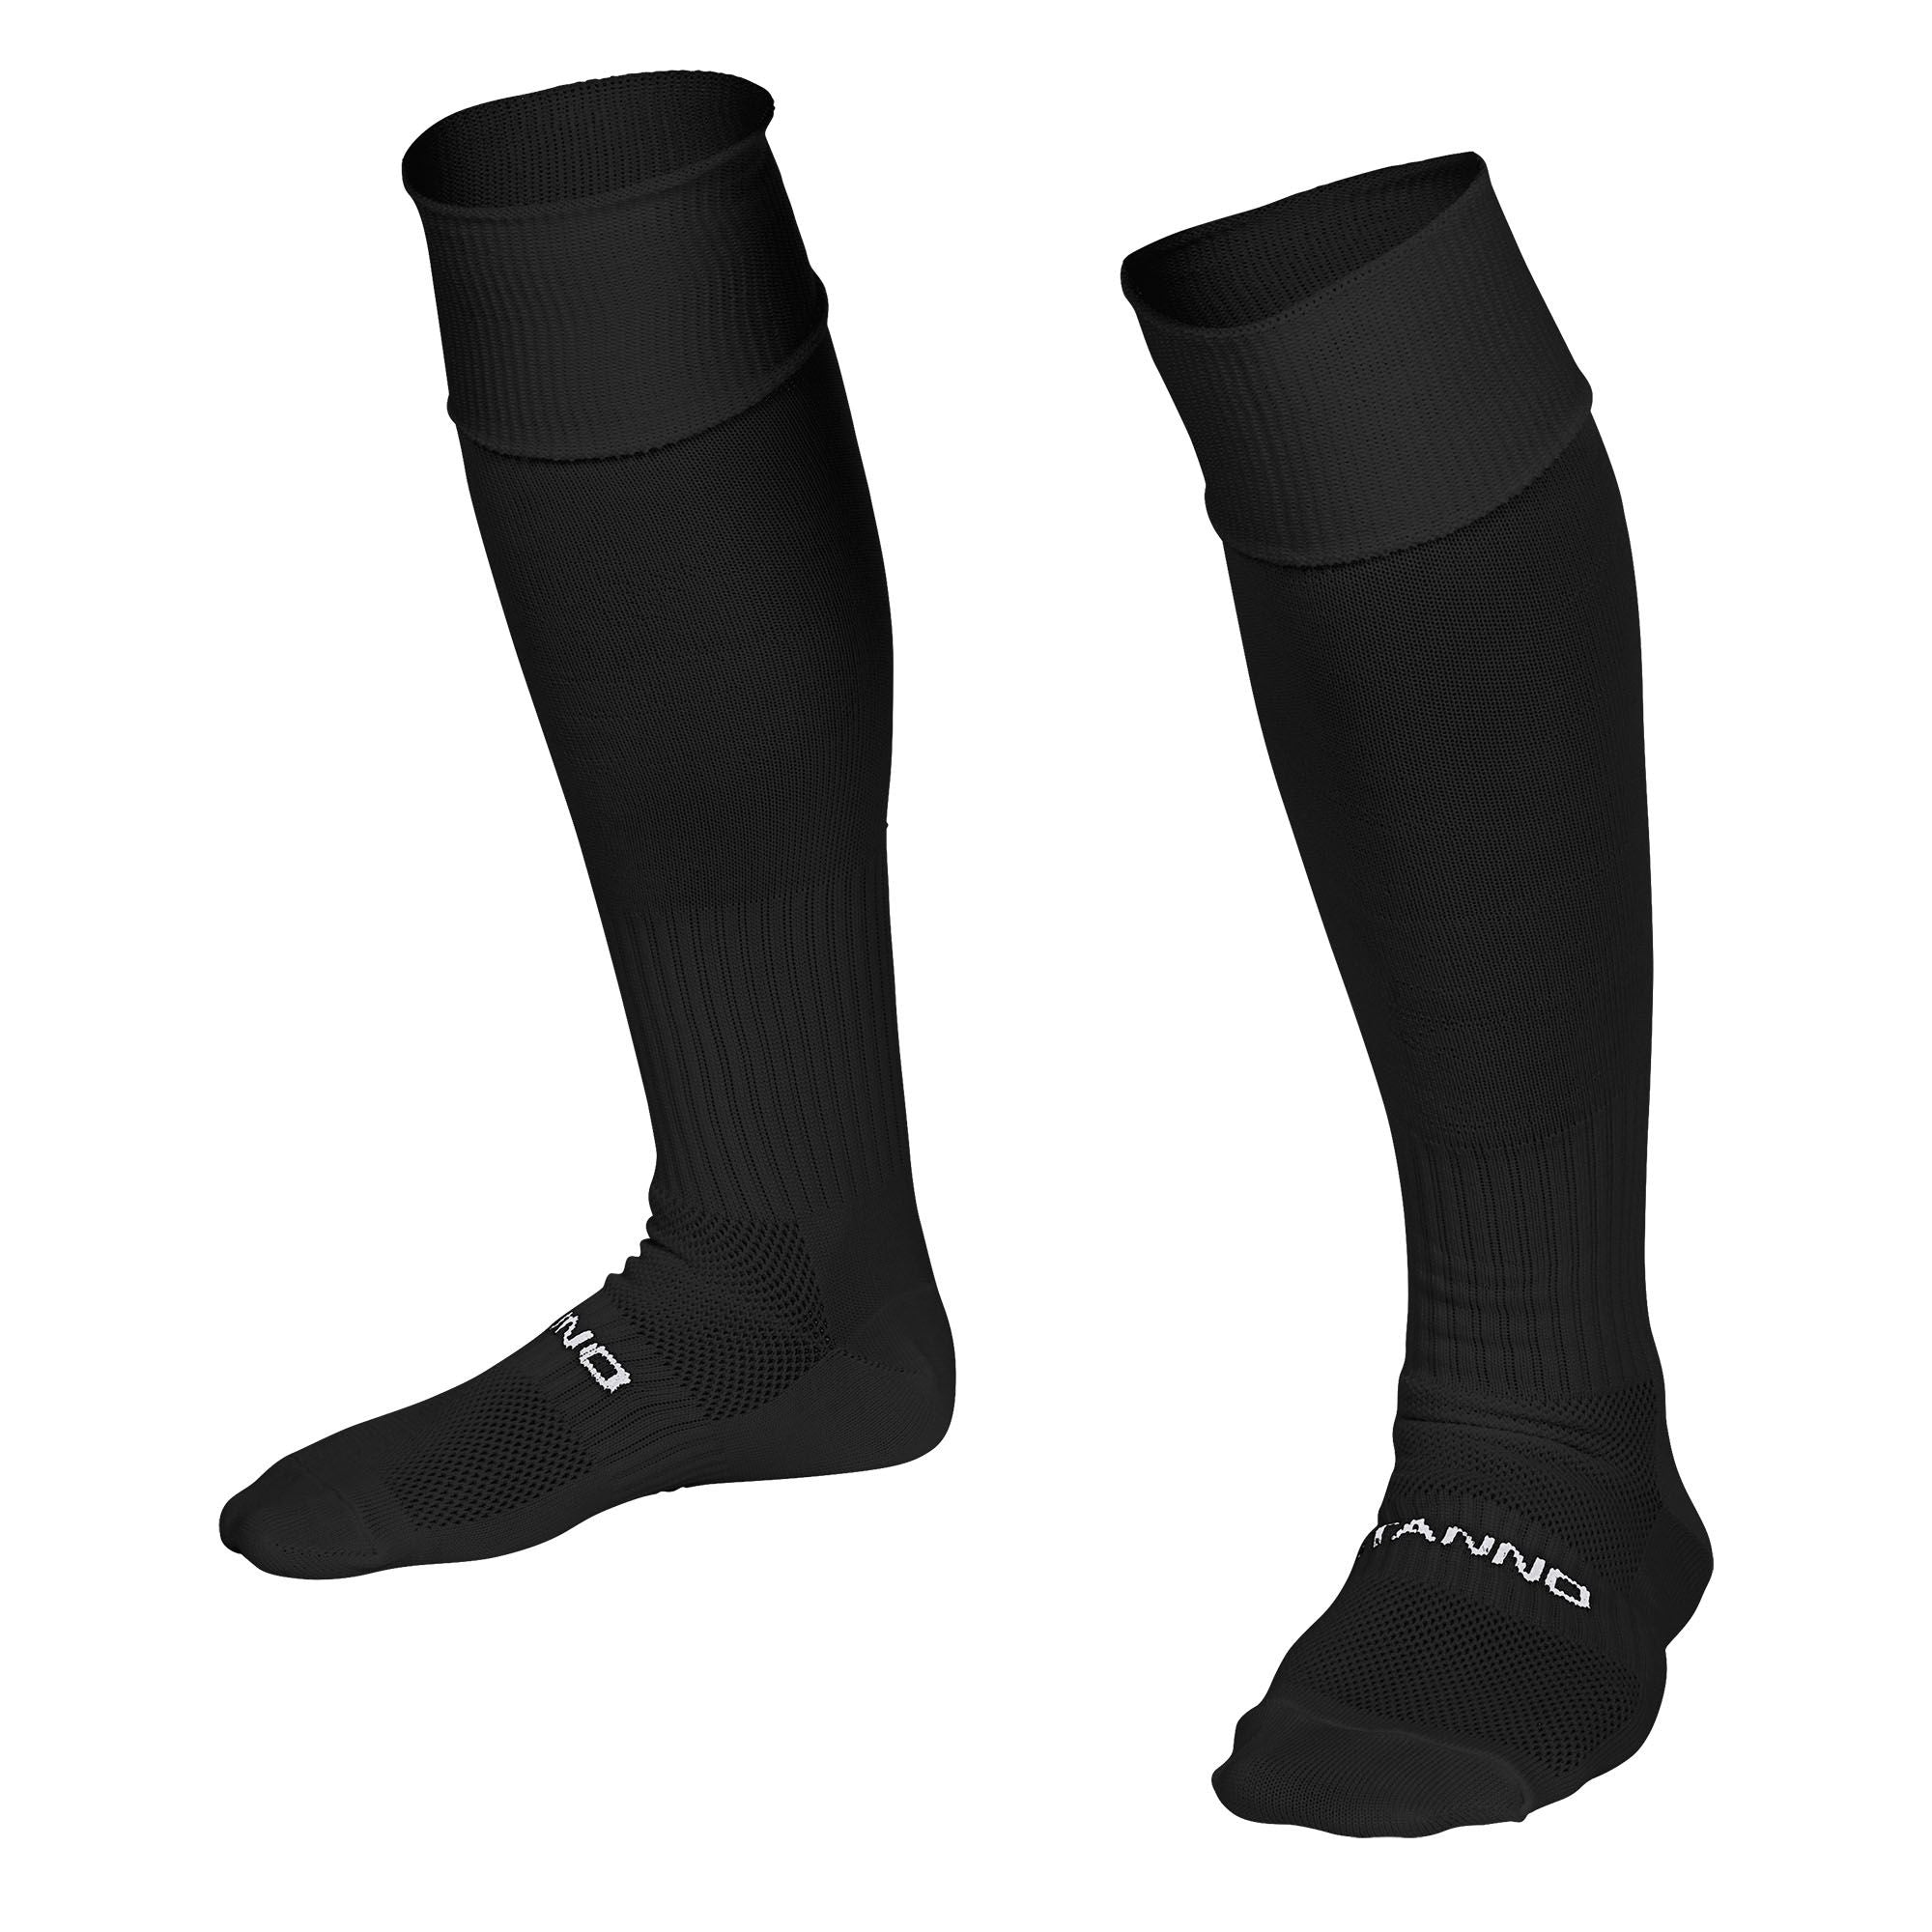 Stanno Park sock in black with Stanno text across the top of the foot.